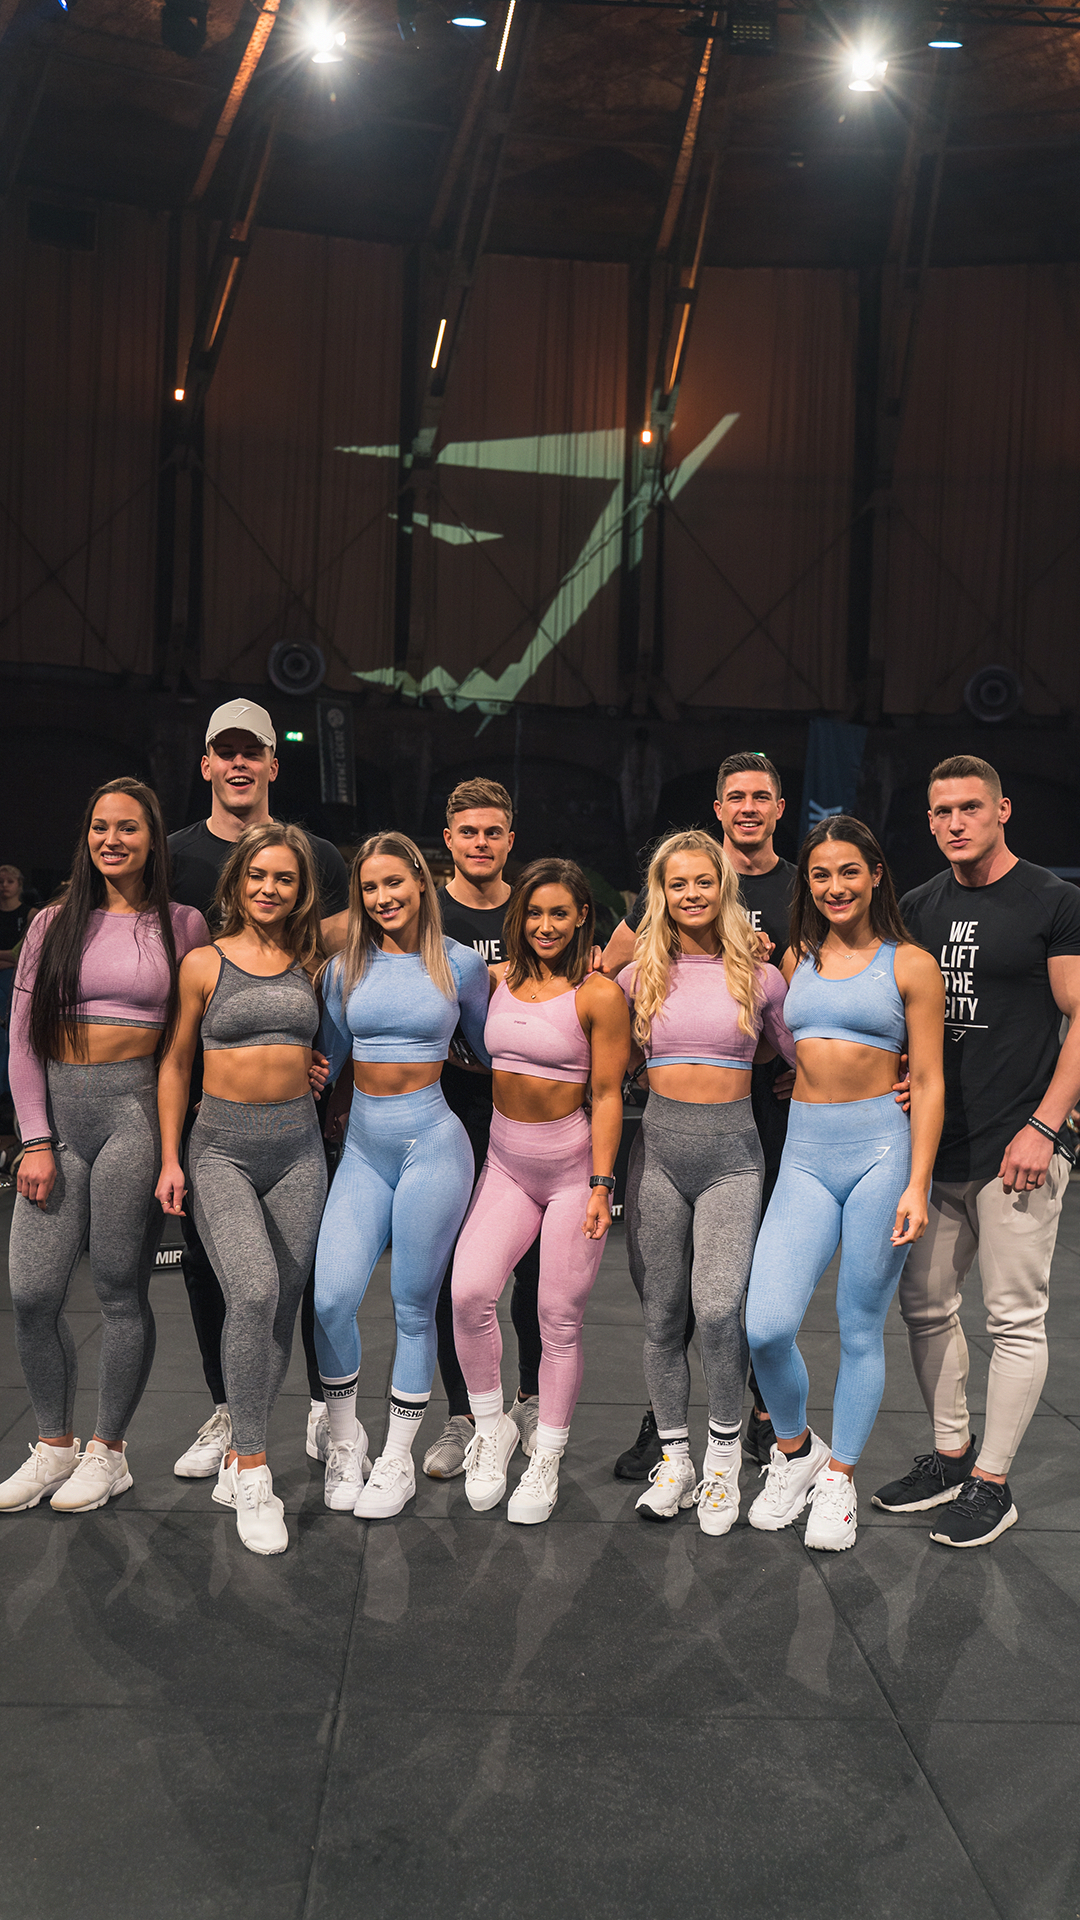 The Family The Athletes Seriously Turned Up For Lift Amsterdam Gymshark Gymsharkpopup Event Family Athlete Am Slim And Fit Fitness Wear Outfits Fitness